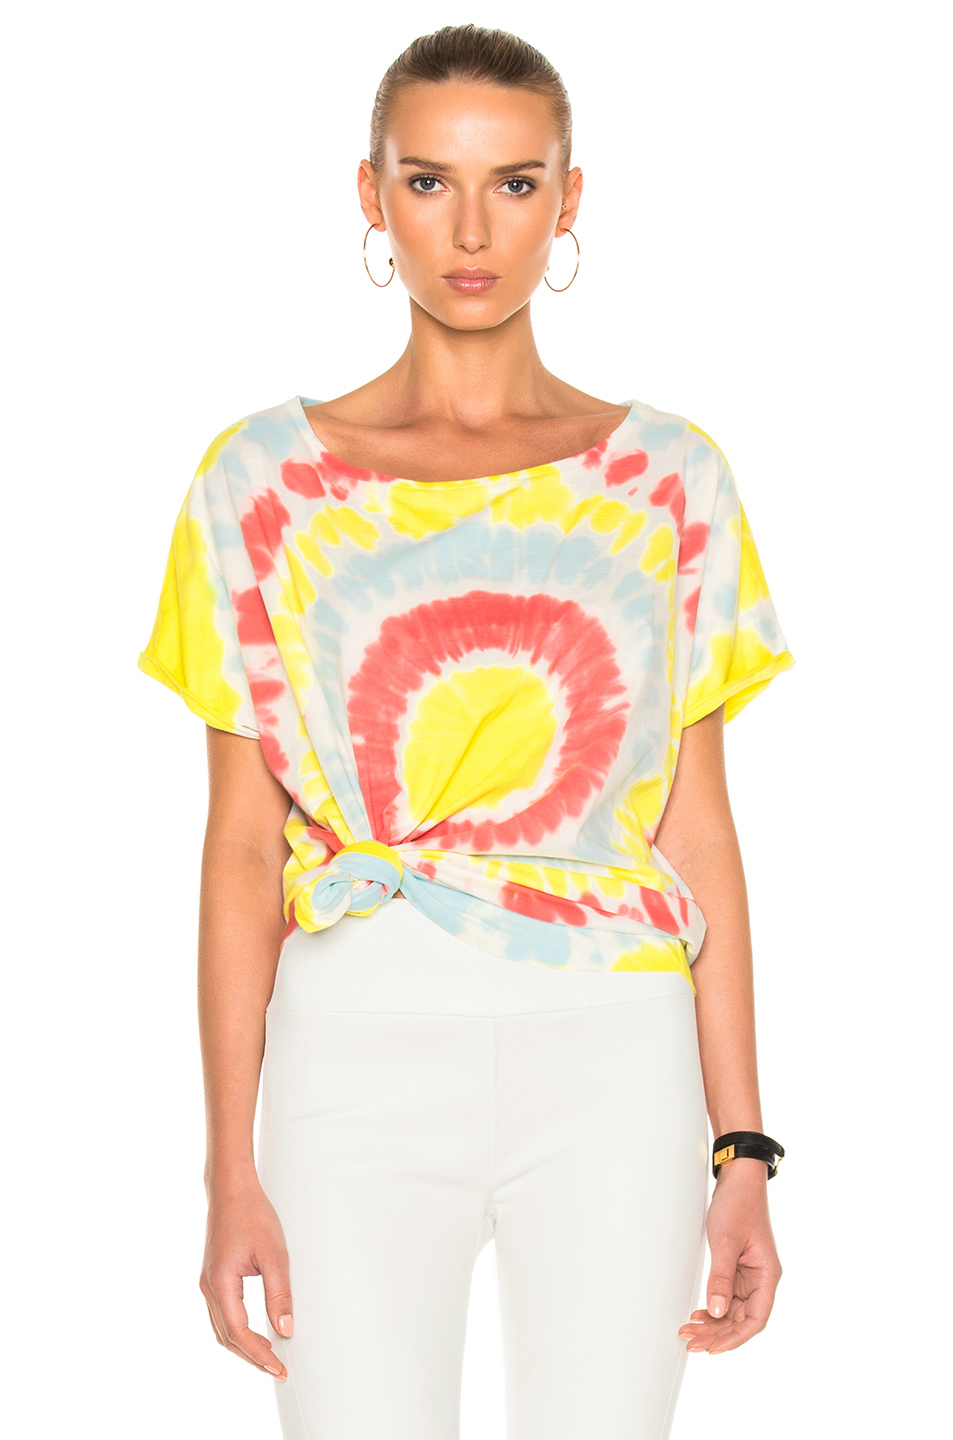 Faith Connexion Tie Dye Crop Top in Abstract,Blue,Ombre & Tie Dye,Red,Yellow